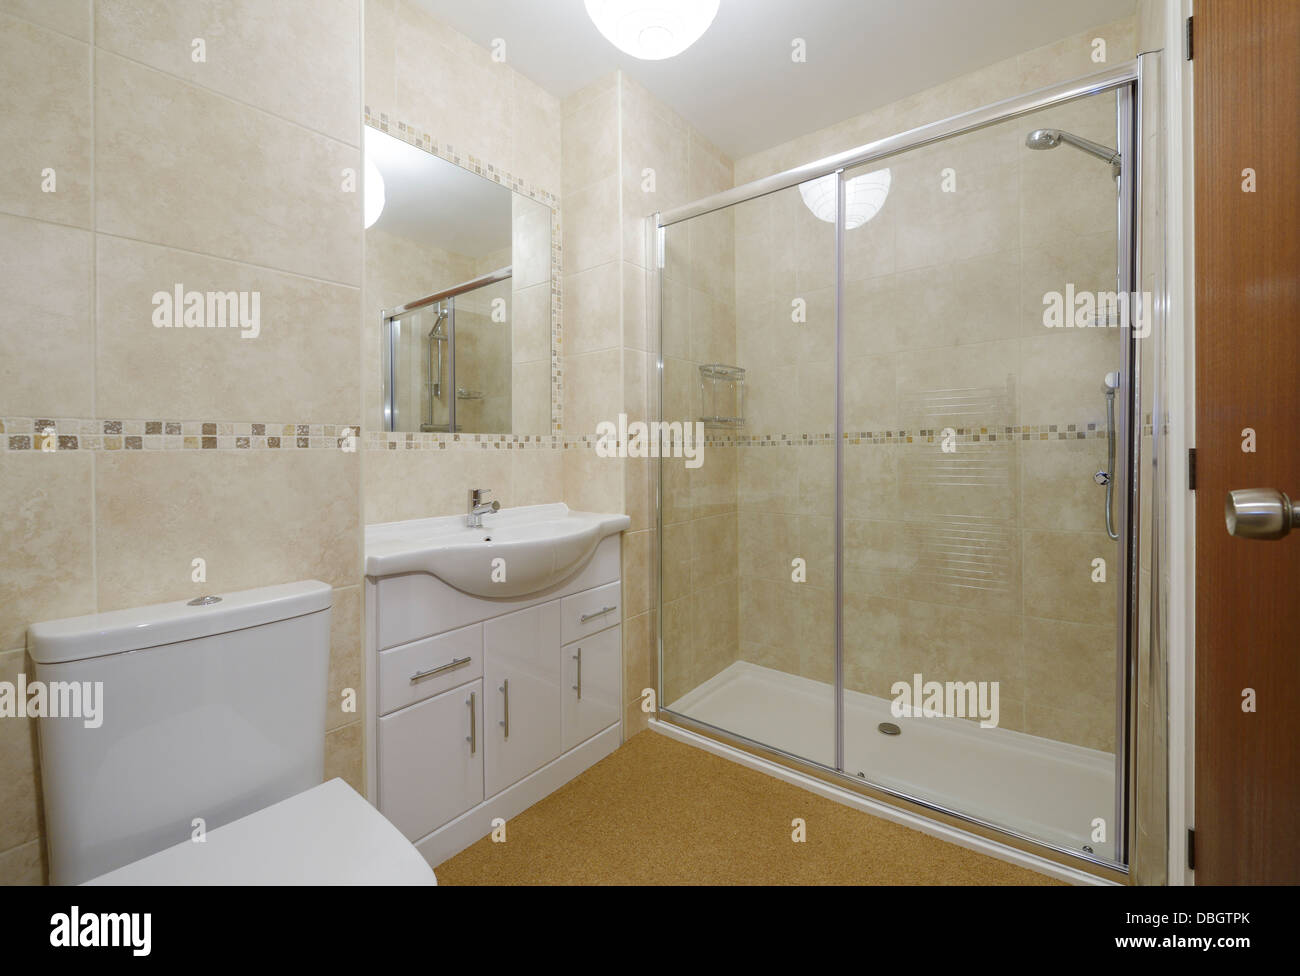 Modern Small Bathroom With Toilet Basin And Shower Stock